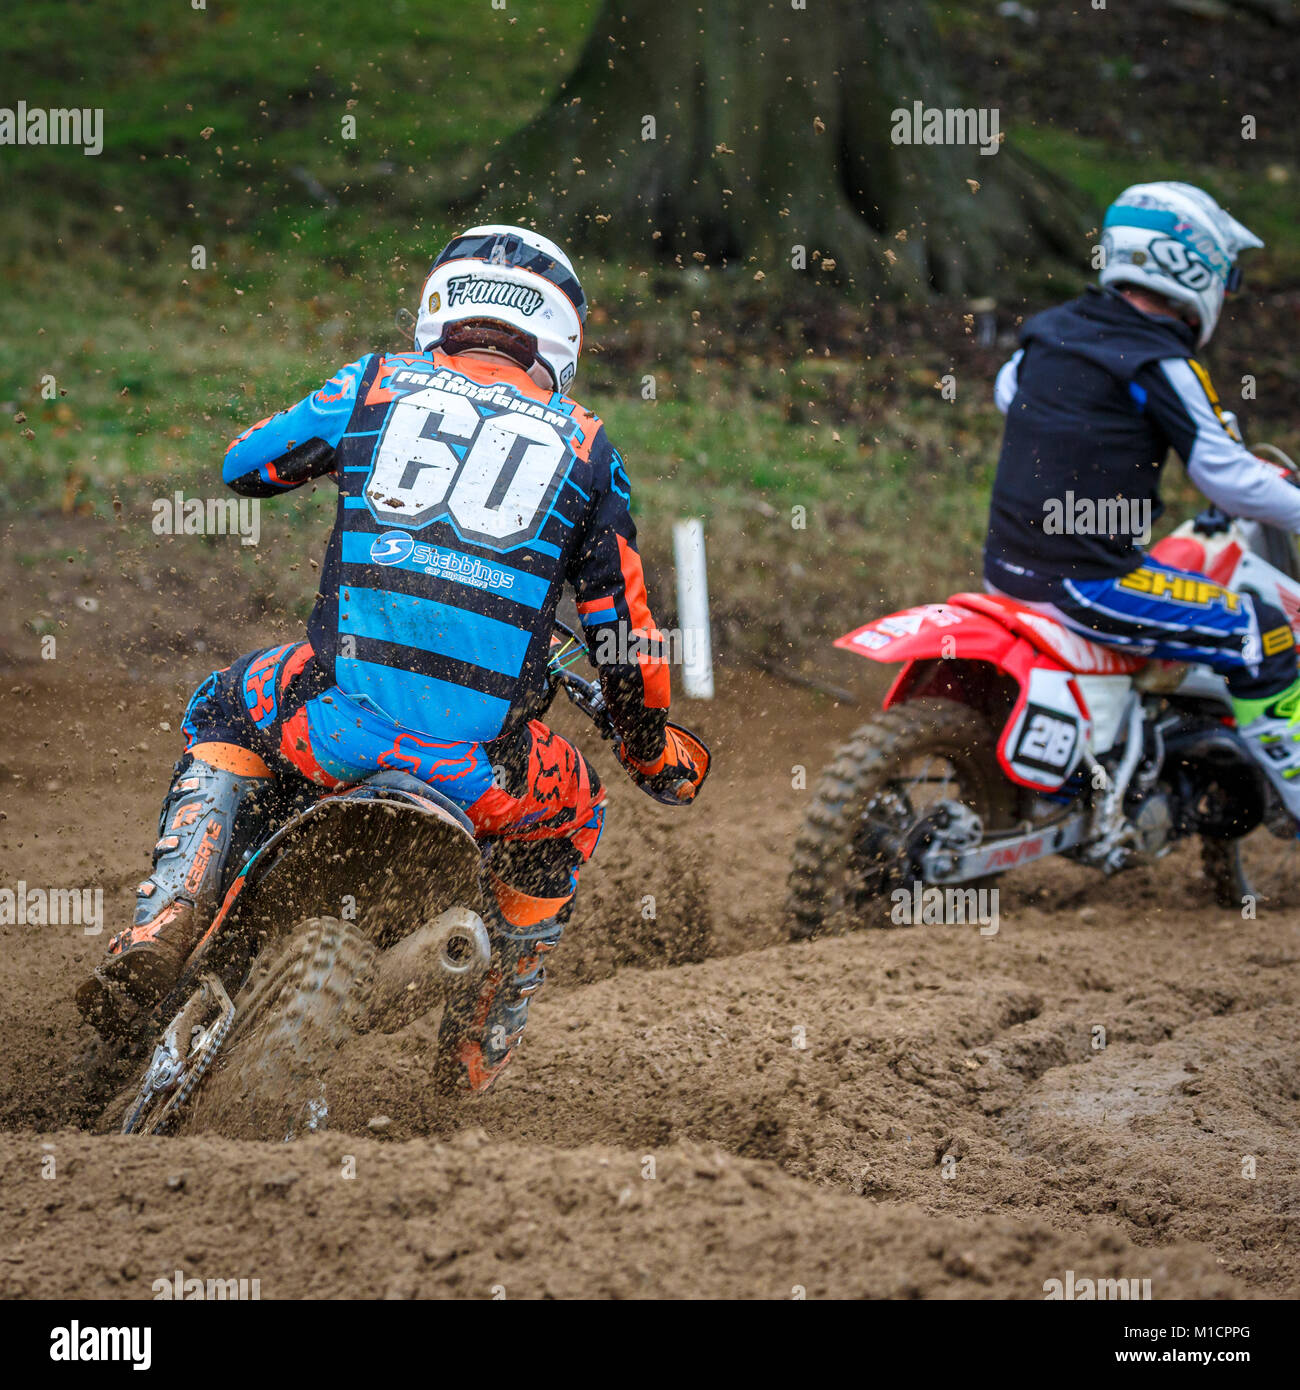 Aaron Framingham on the Fabrican Engineering KTM 250 at the NGR & ACU Eastern EVO Solo Motocross Championships, - Stock Image